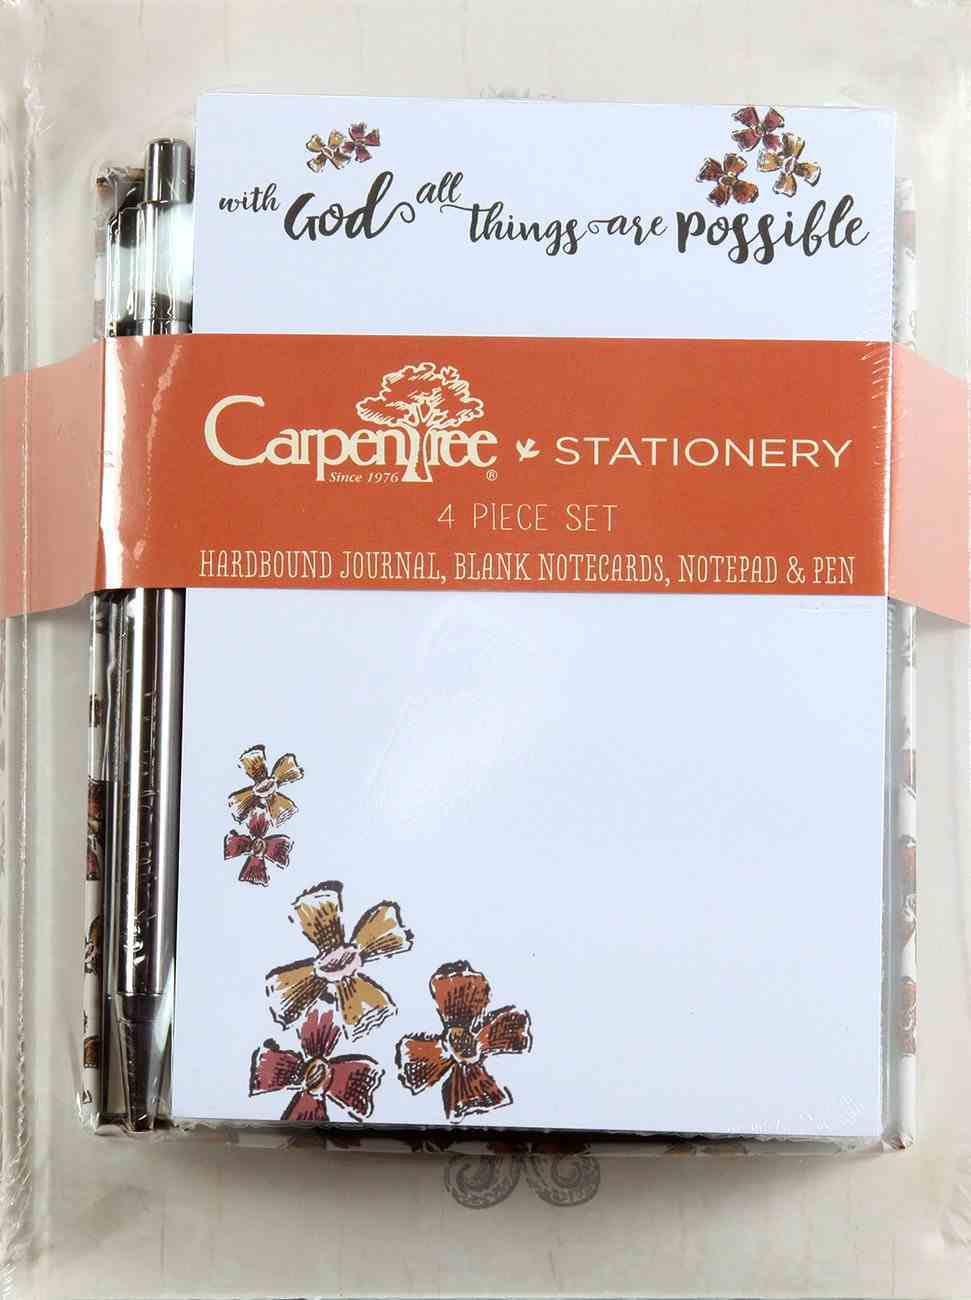 4 Piece Stationery Set: Journal, Blank Notecards, Notepad & Pen, With God All Things Stationery